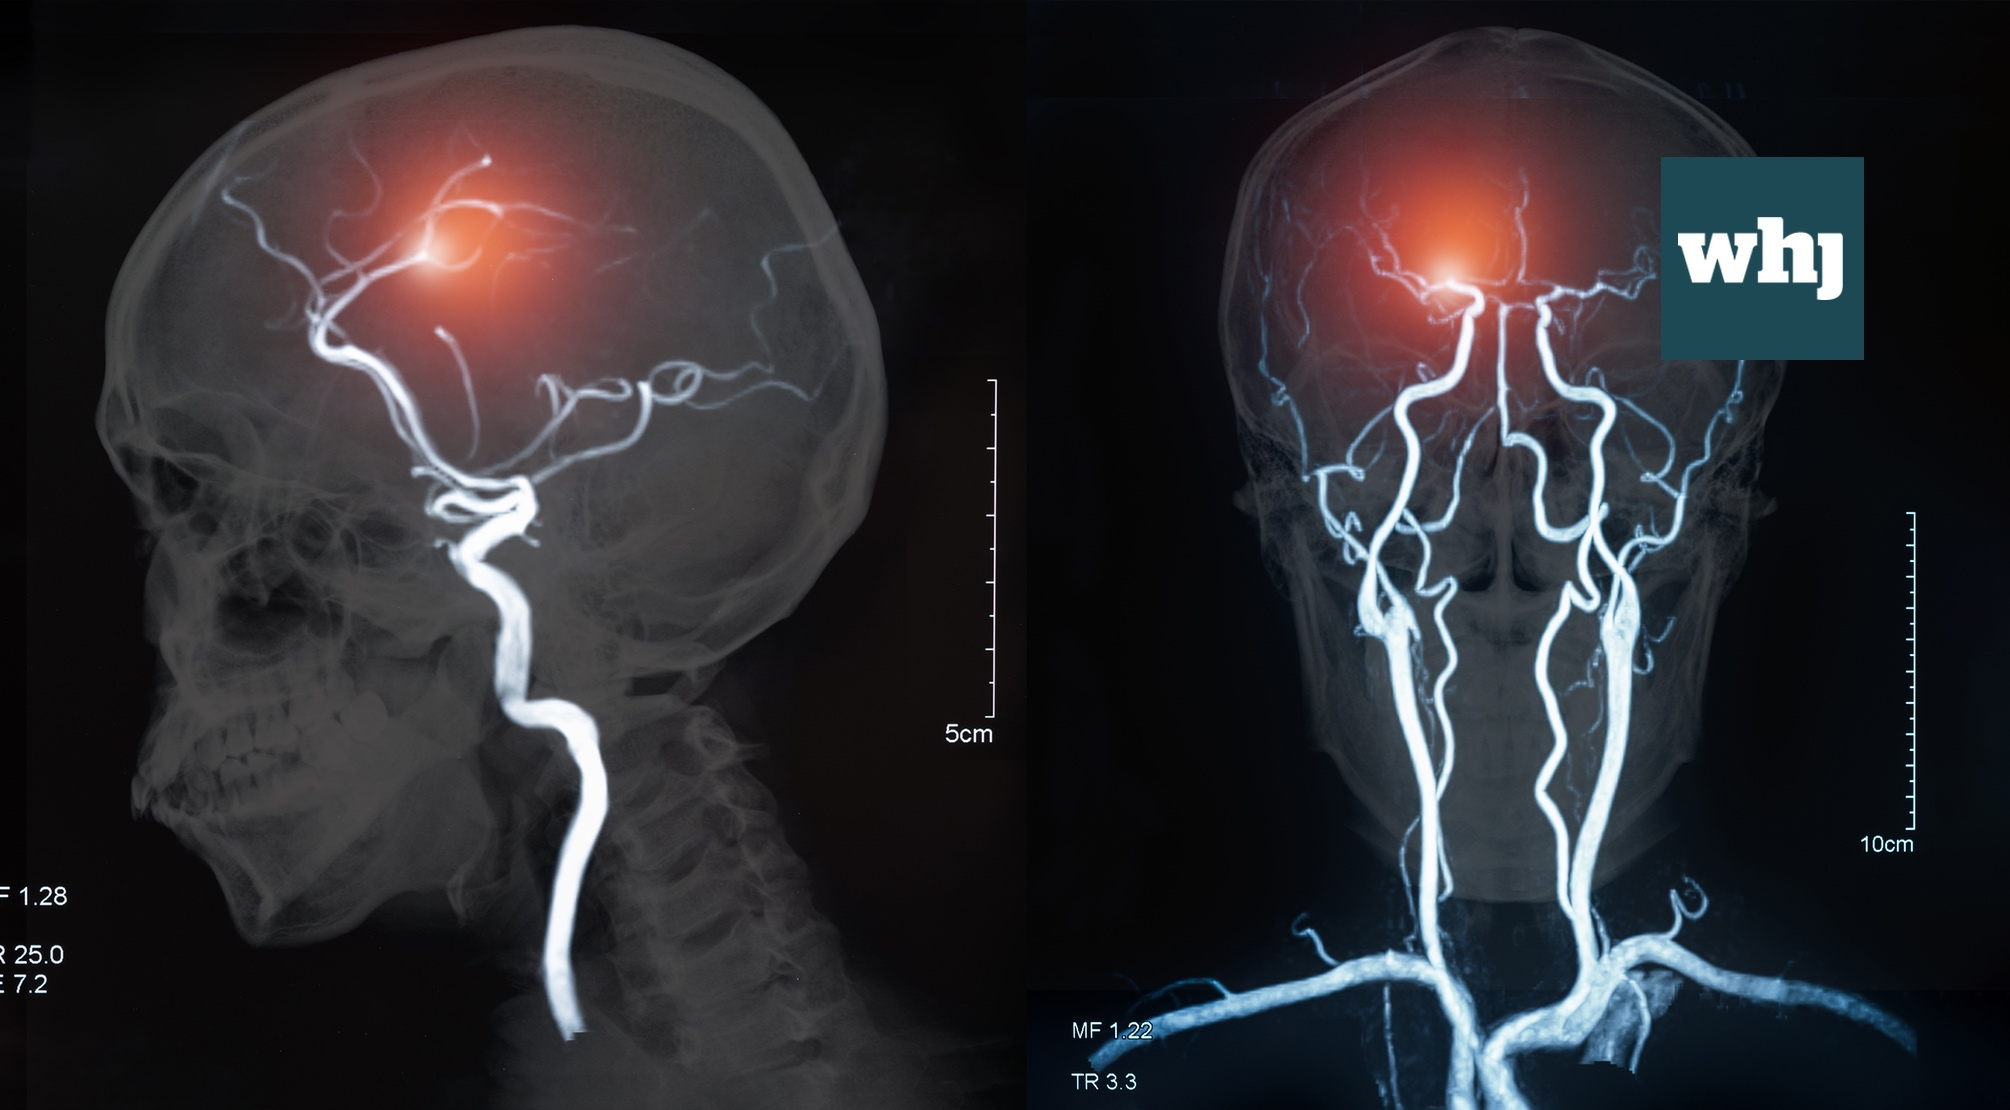 World Stroke Organisation announces global strategy to cut stroke rates